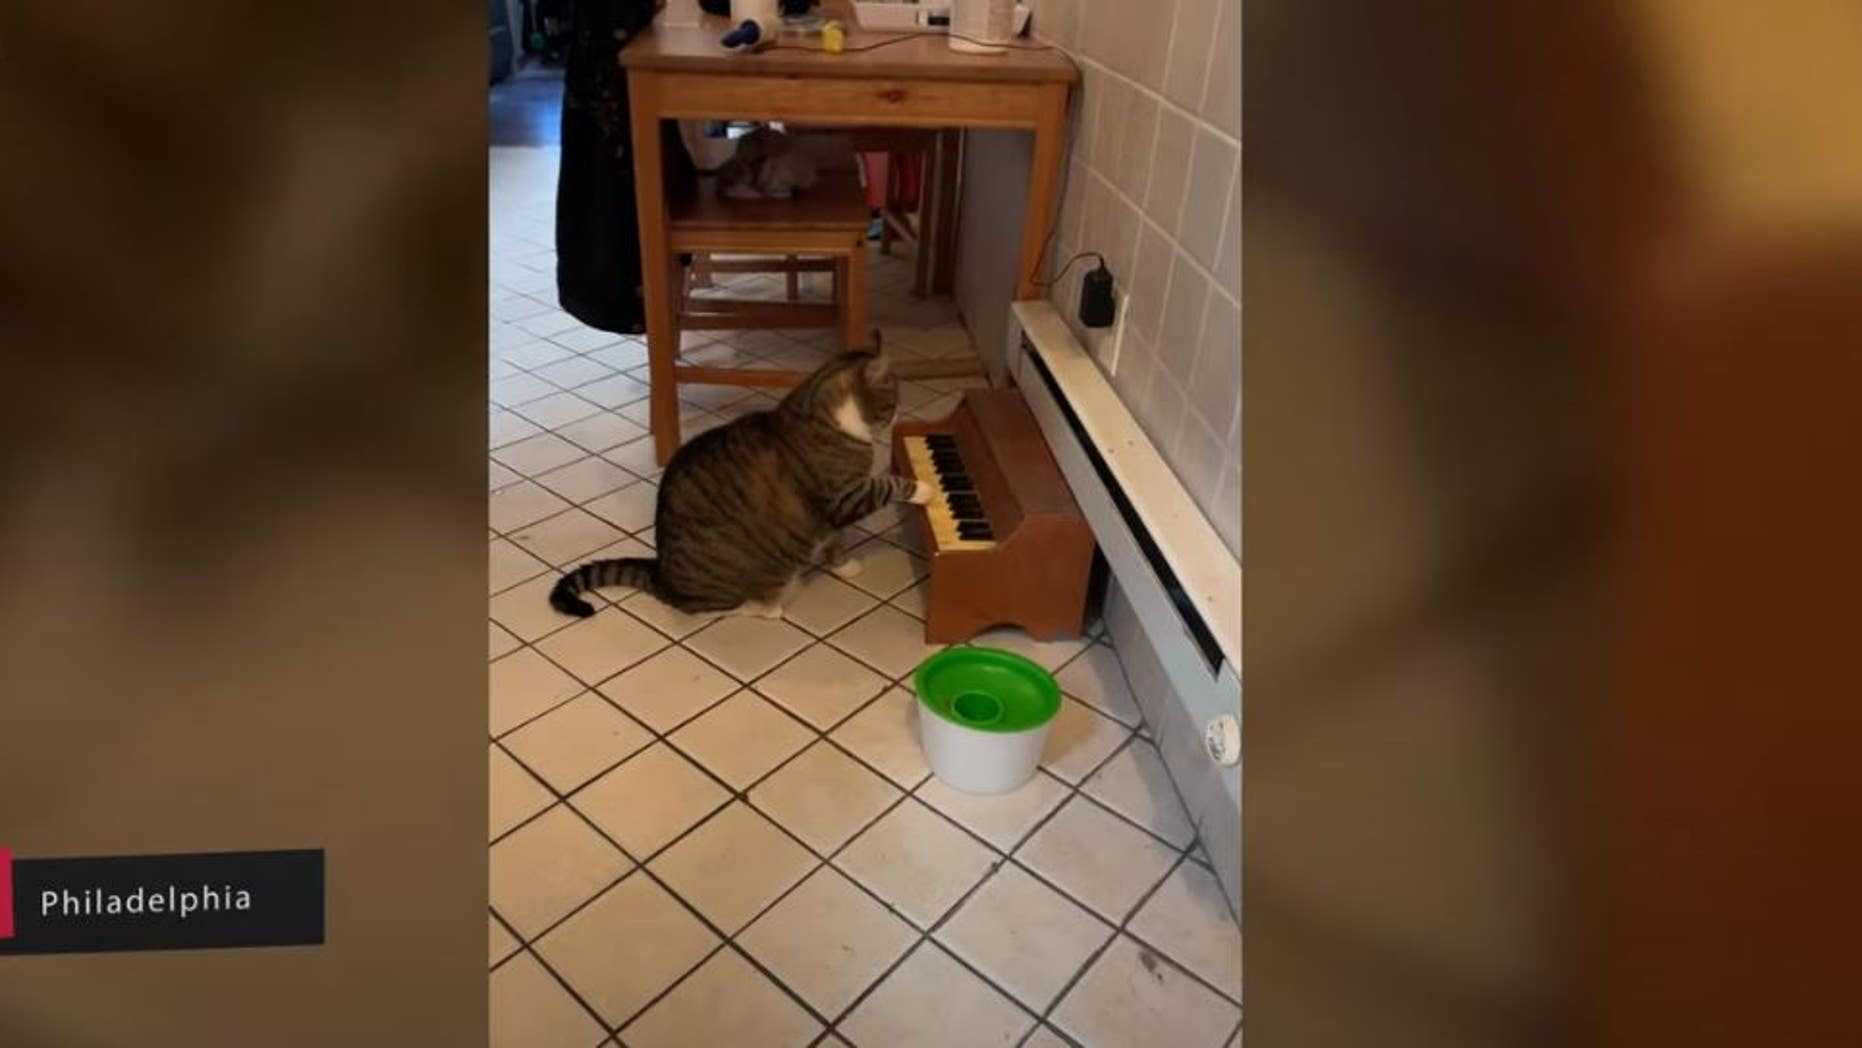 A musically-inclined feline was recorded playing his sad hunger song for his owner, Kate Nyx.